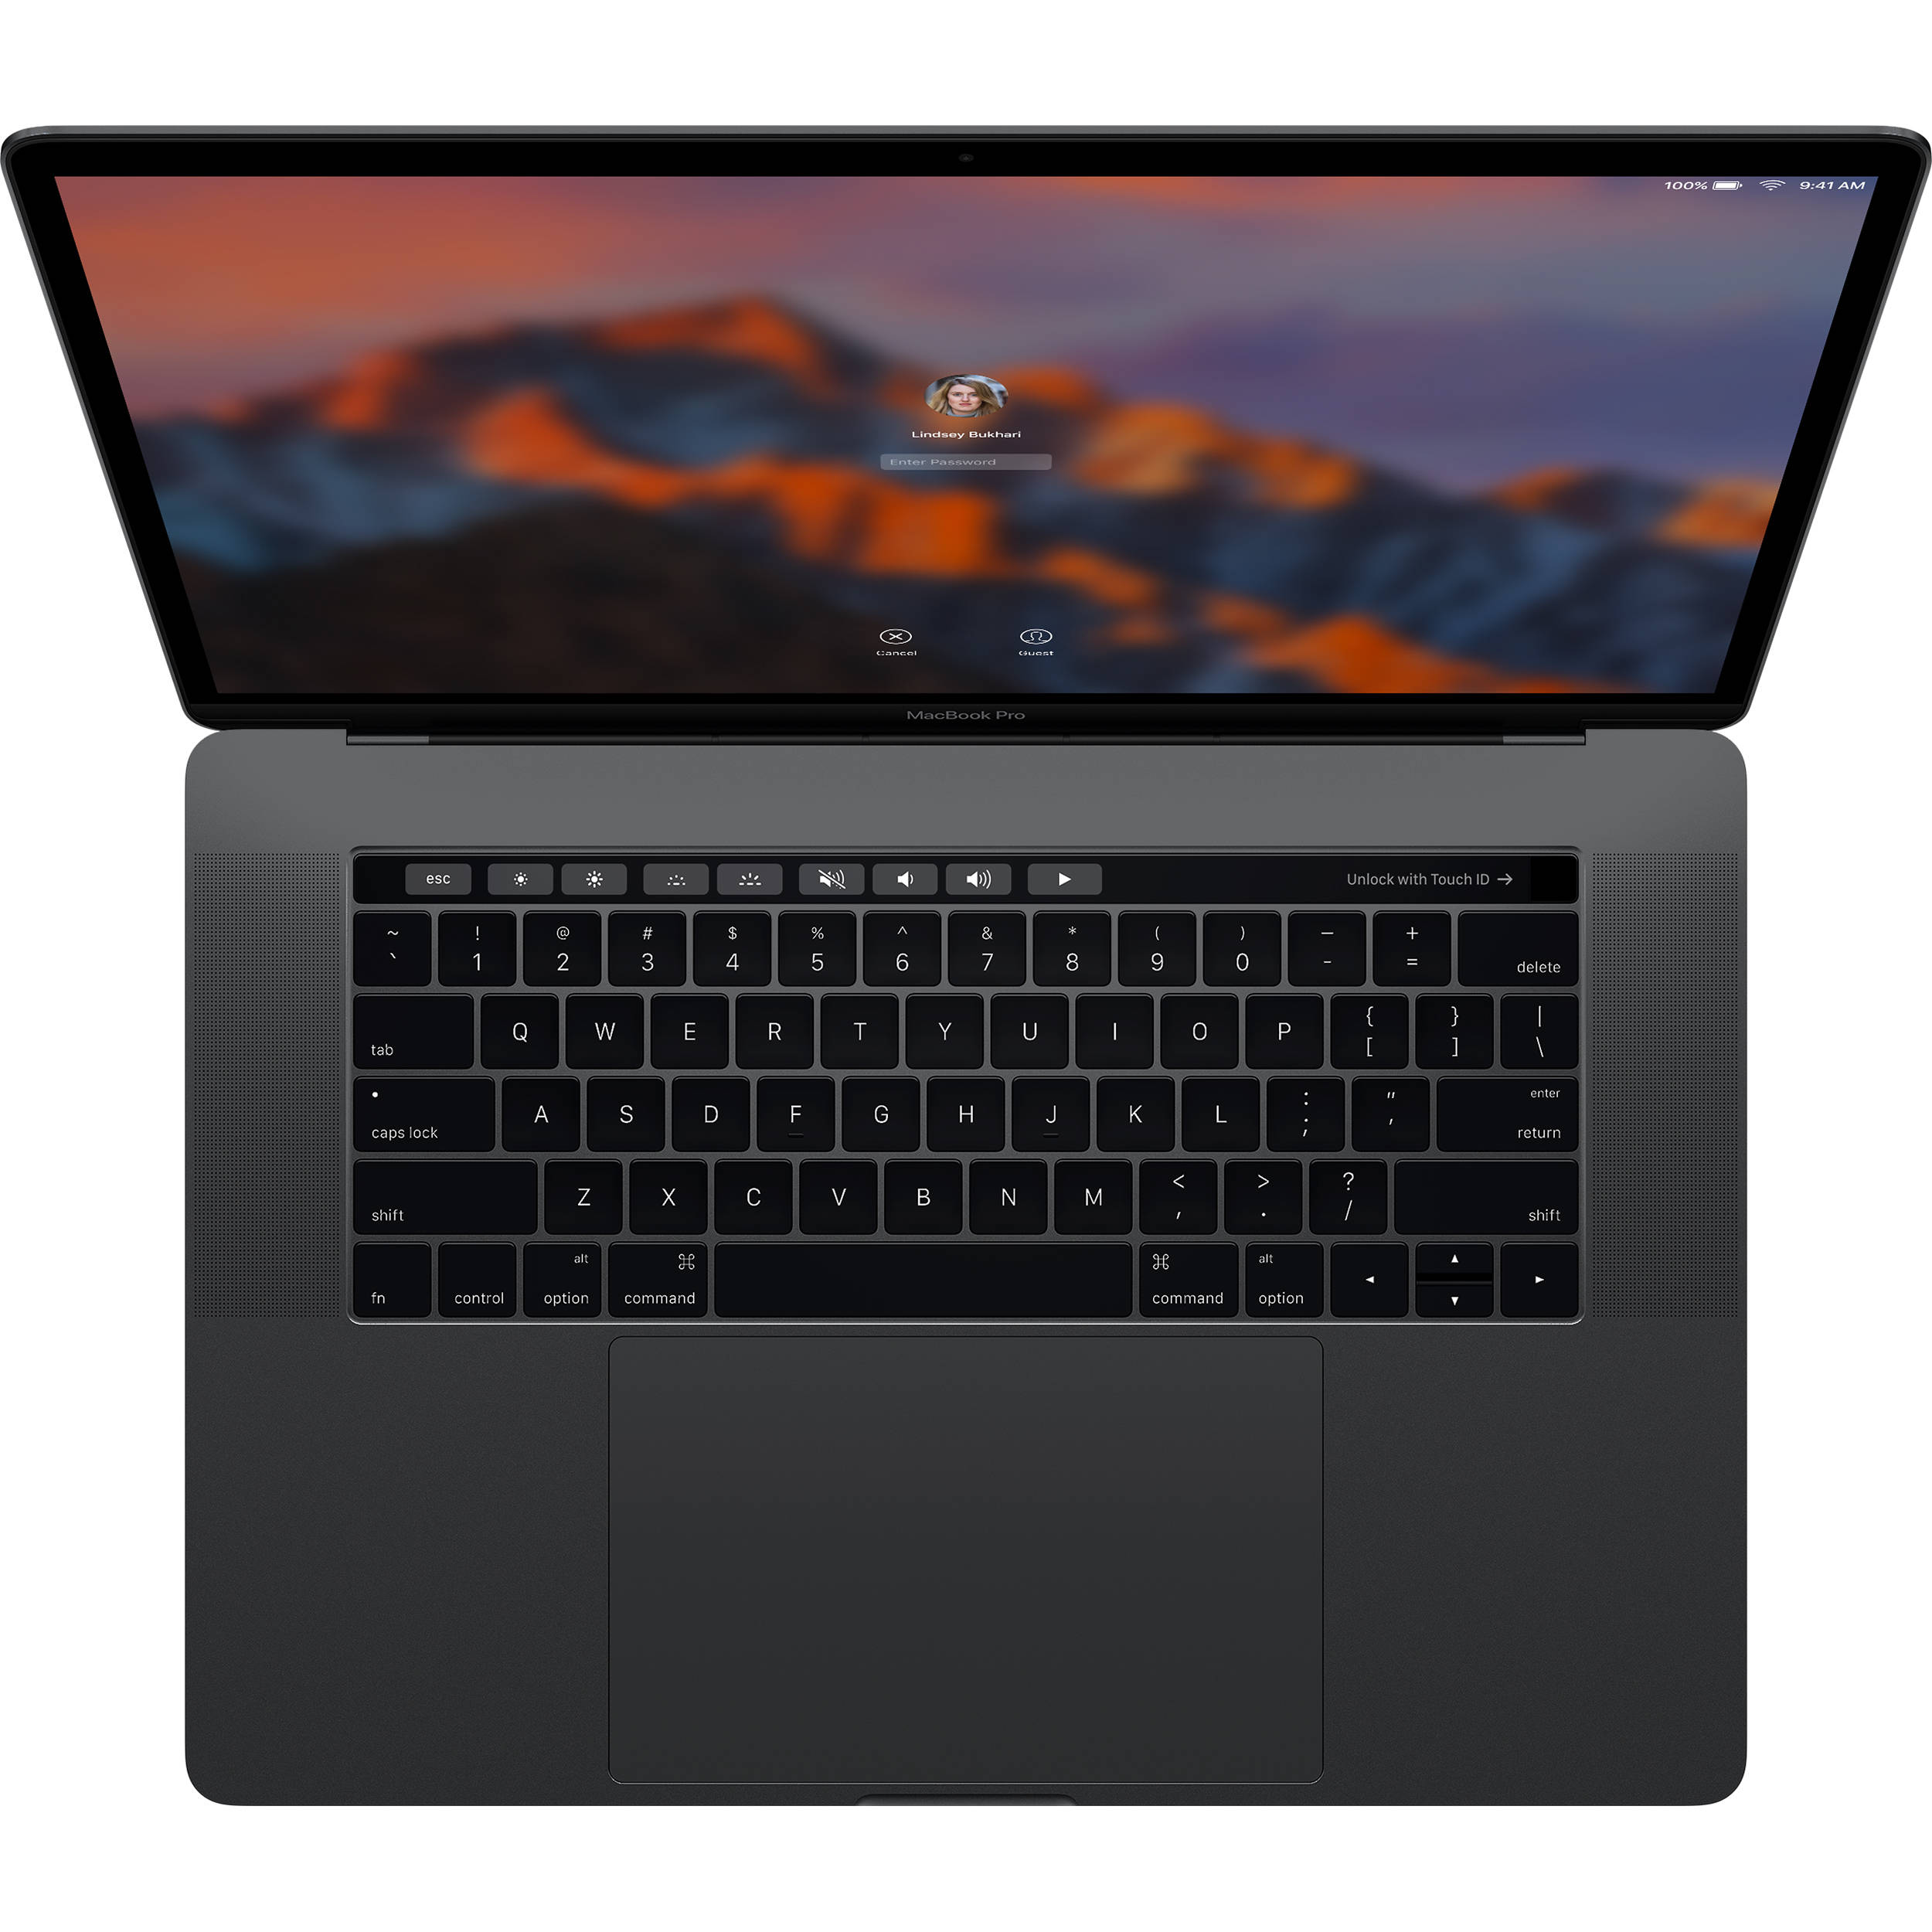 MPTT2SL/A MacBook Pro 15'' i7 2.9GHz/16G/512/TB/SK/Sp Gray